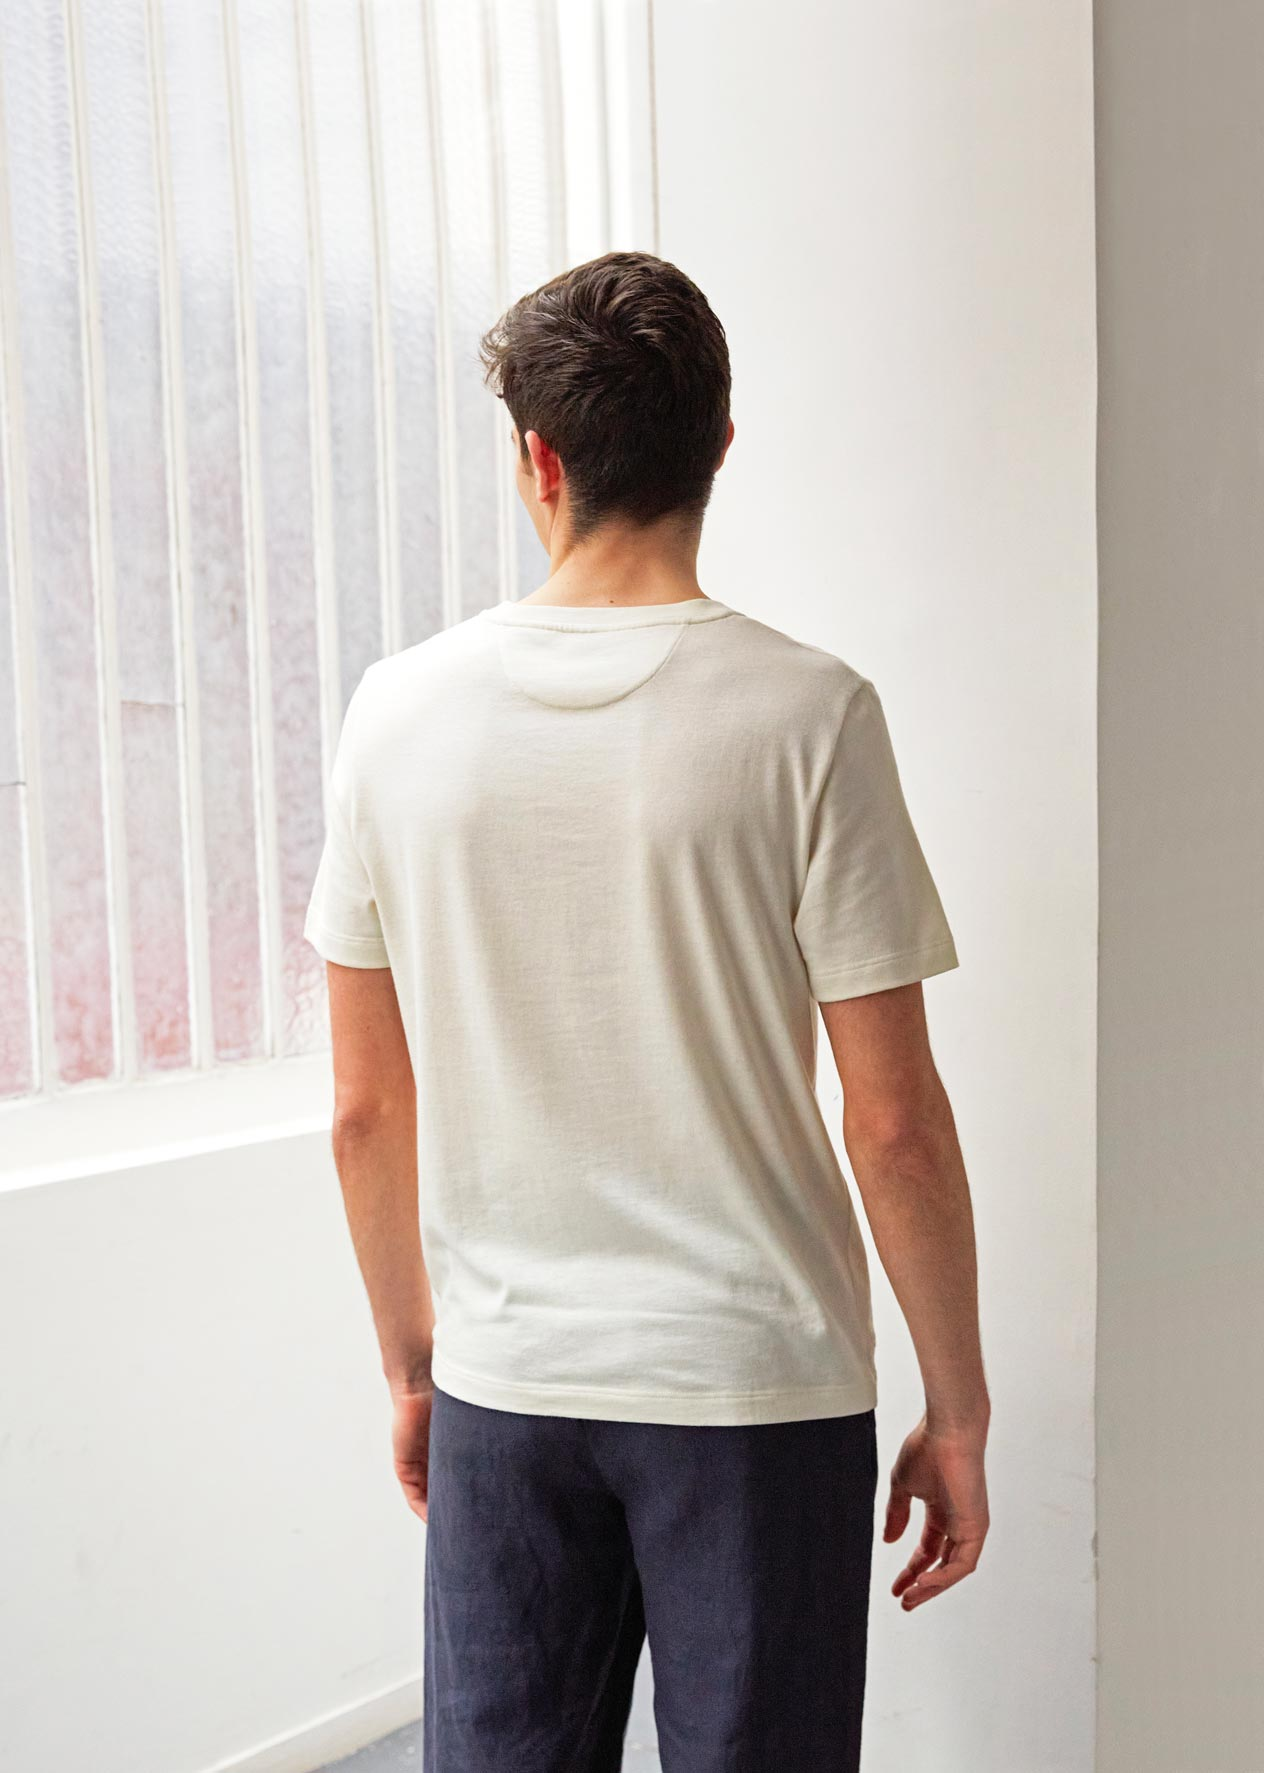 Essential t-shirt - Organic cotton jersey - Ecru - De Bonne Facture